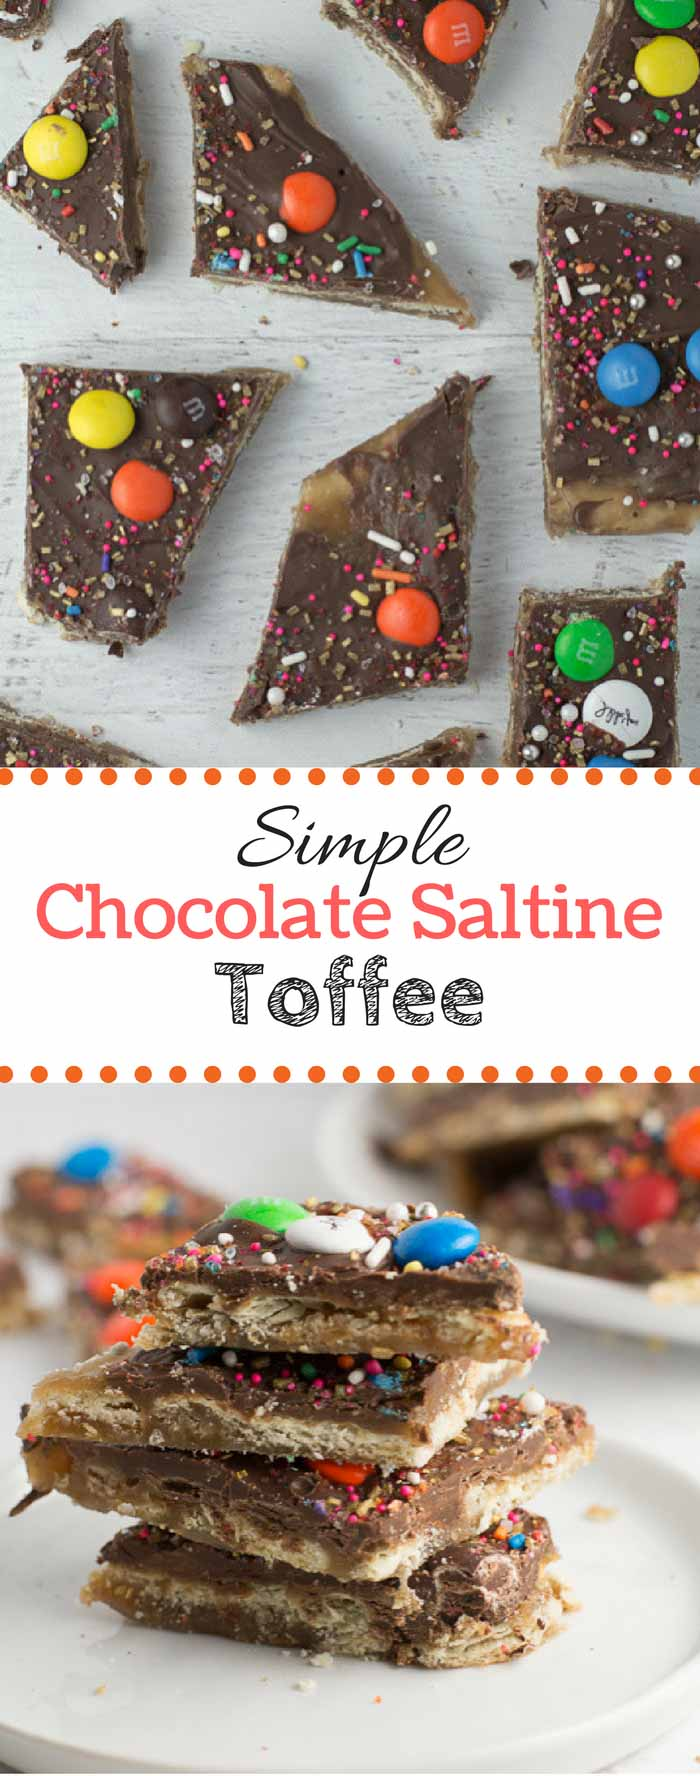 The rich flavors of milk chocolate and toffee come together to make this Chocolate Saltine Toffee! Perfect for when you've got some saltine crackers laying around! #saltinetoffee #toffeebark #saltinetoffee #easydessert #toffee | bakedujour.com